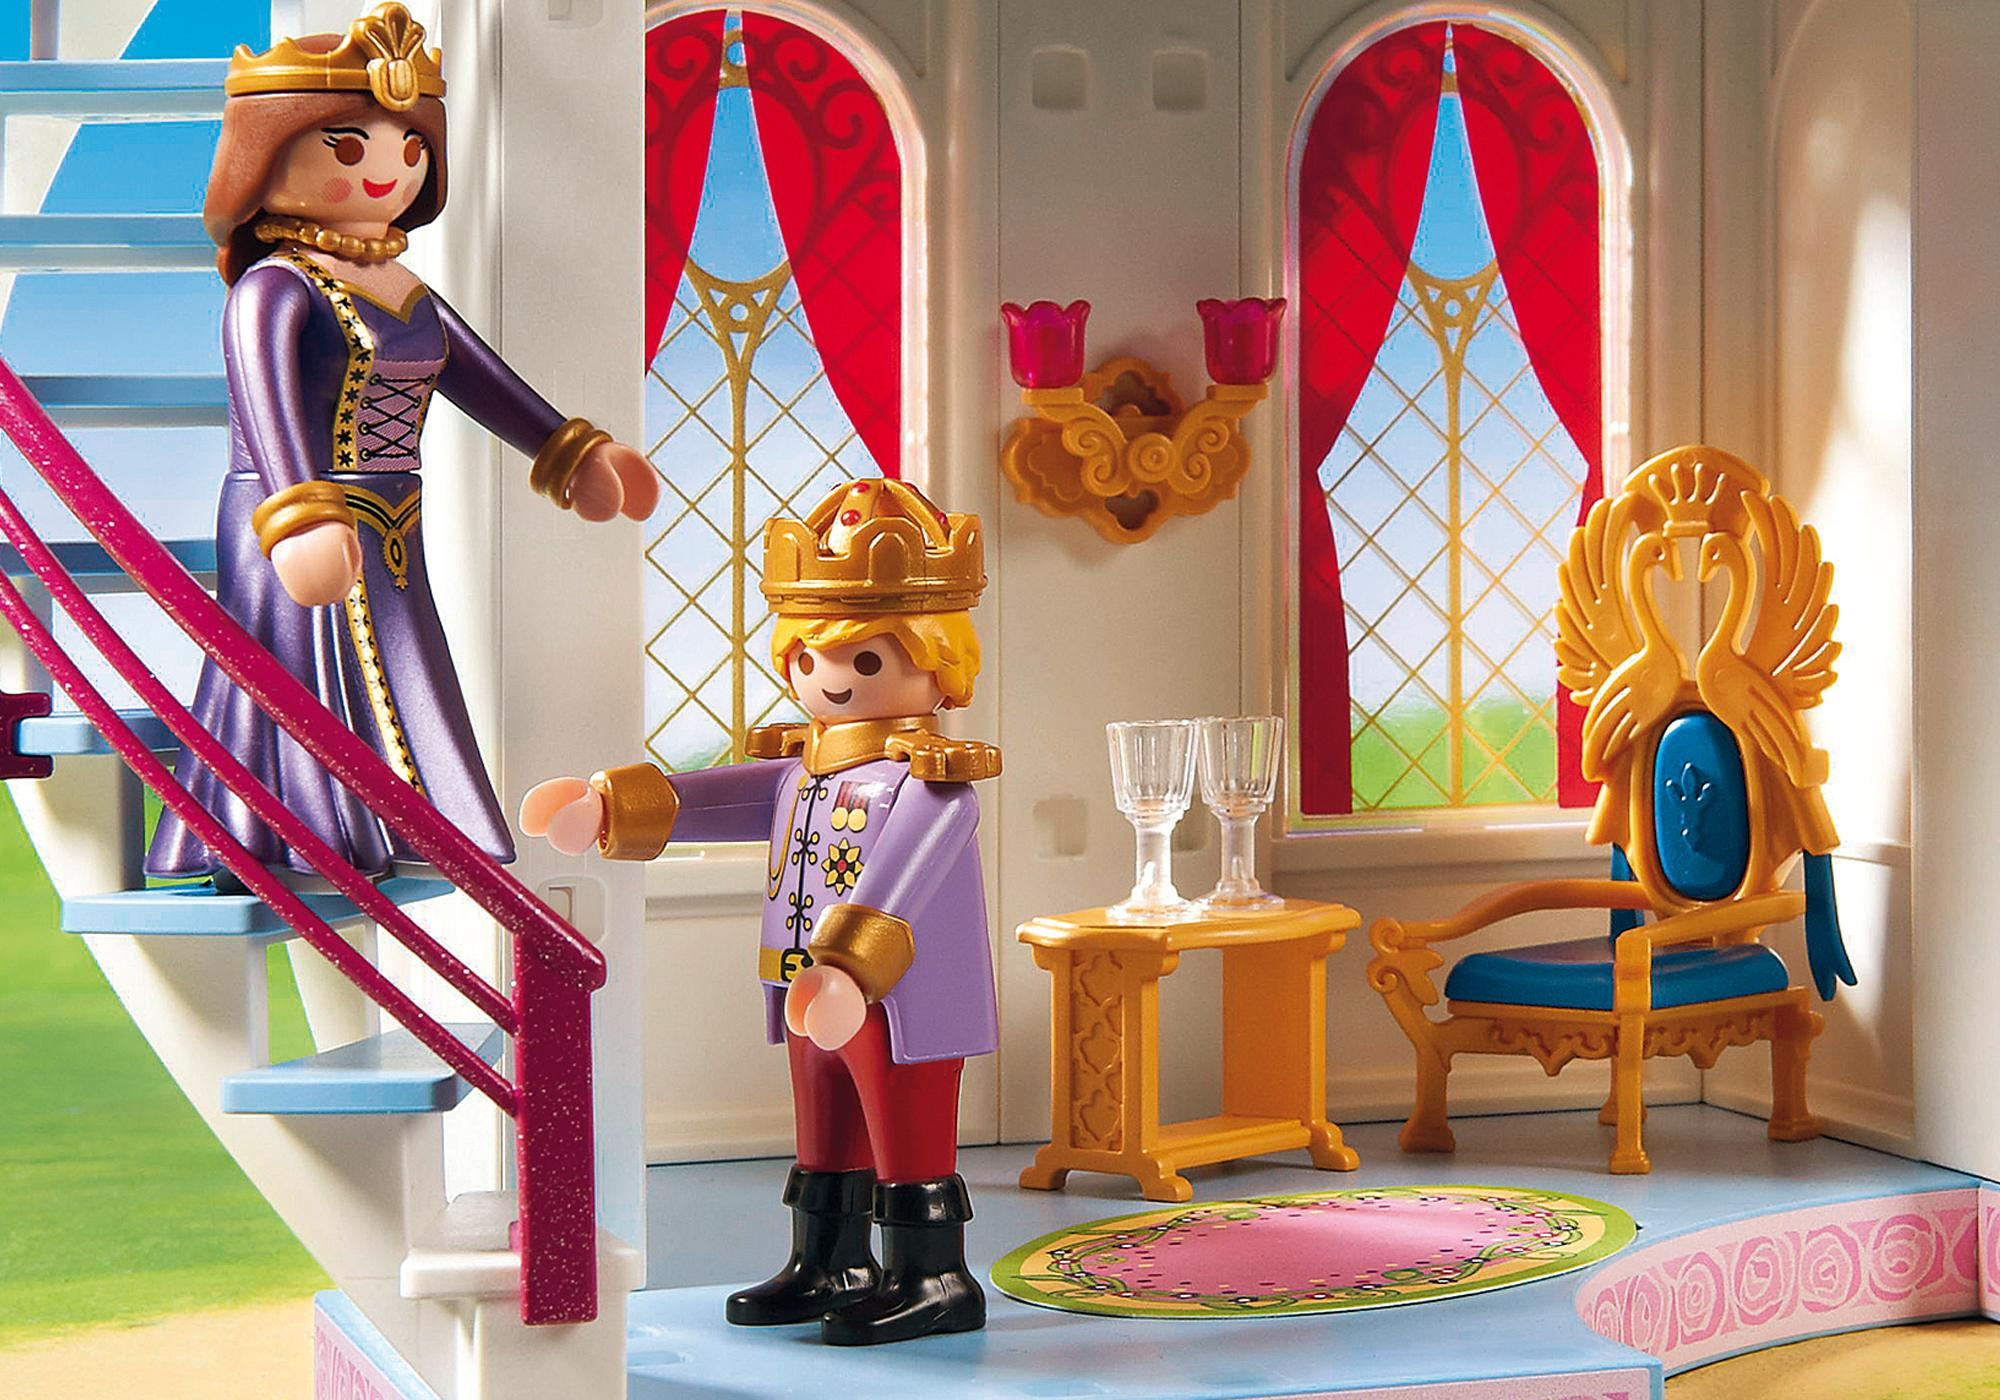 http://media.playmobil.com/i/playmobil/6849_product_extra2